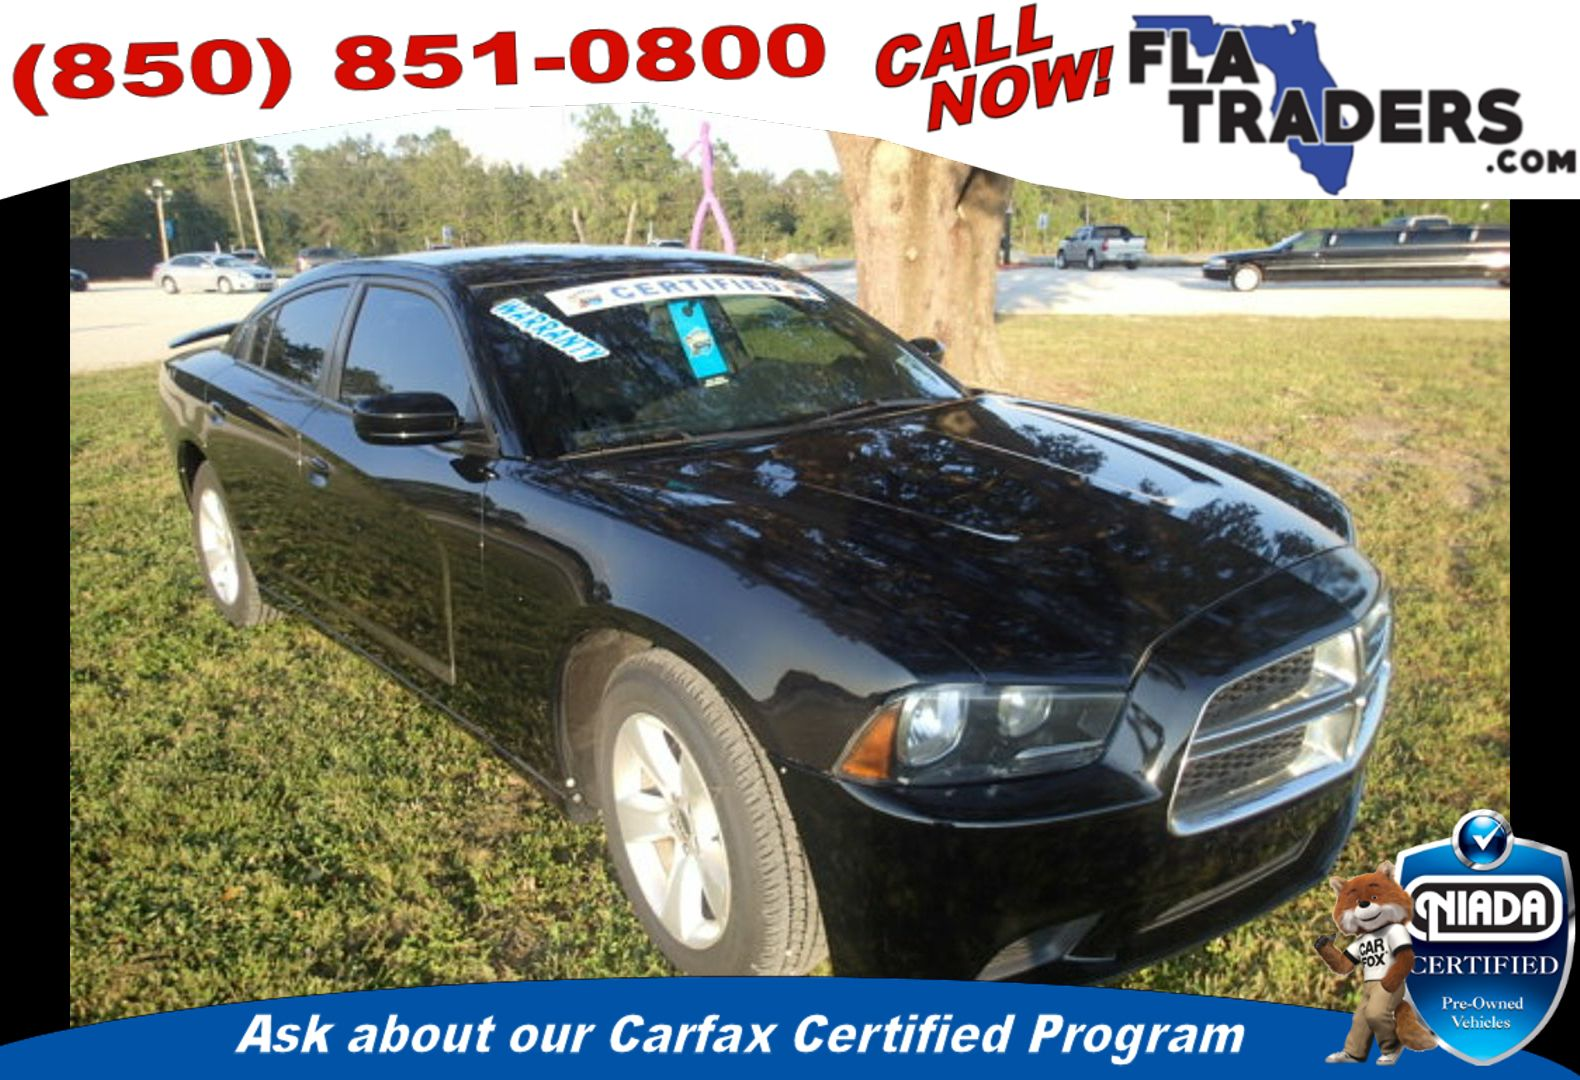 2012 DODGE CHARGER - Florida Traders Used Cars in Panama City FL ...